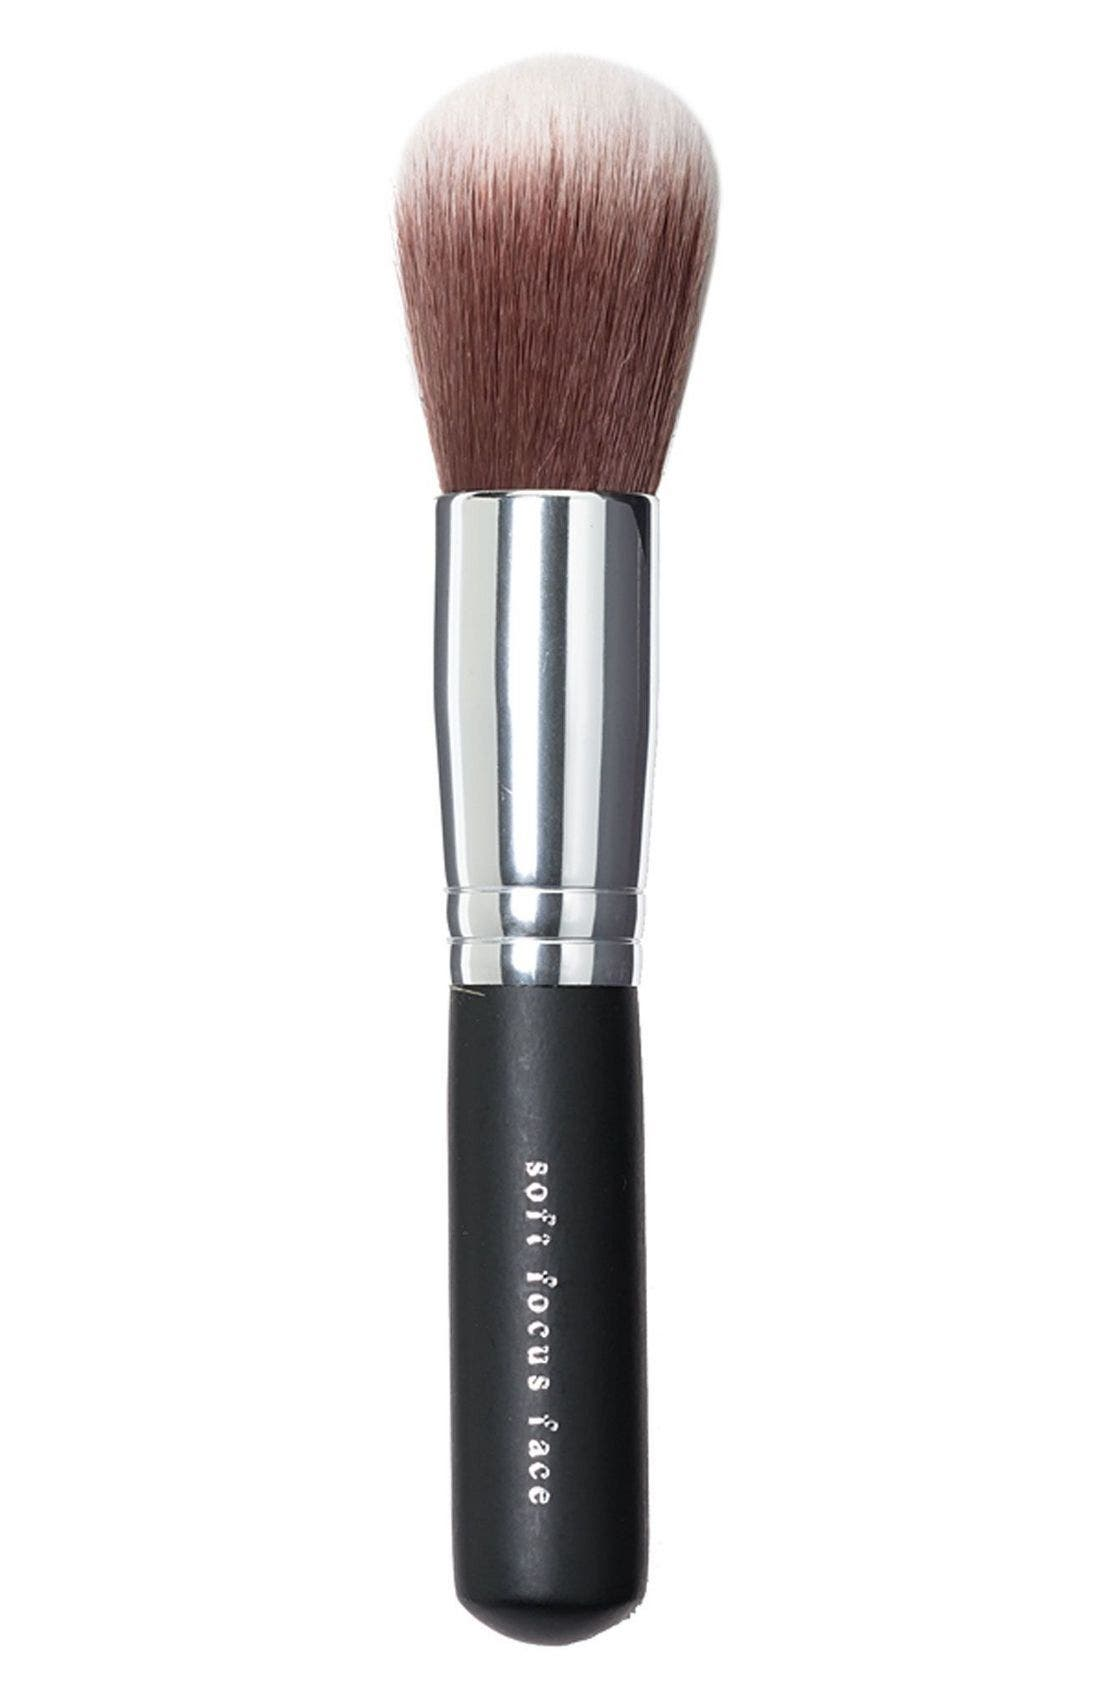 Soft Focus Face Brush,                             Main thumbnail 1, color,                             000